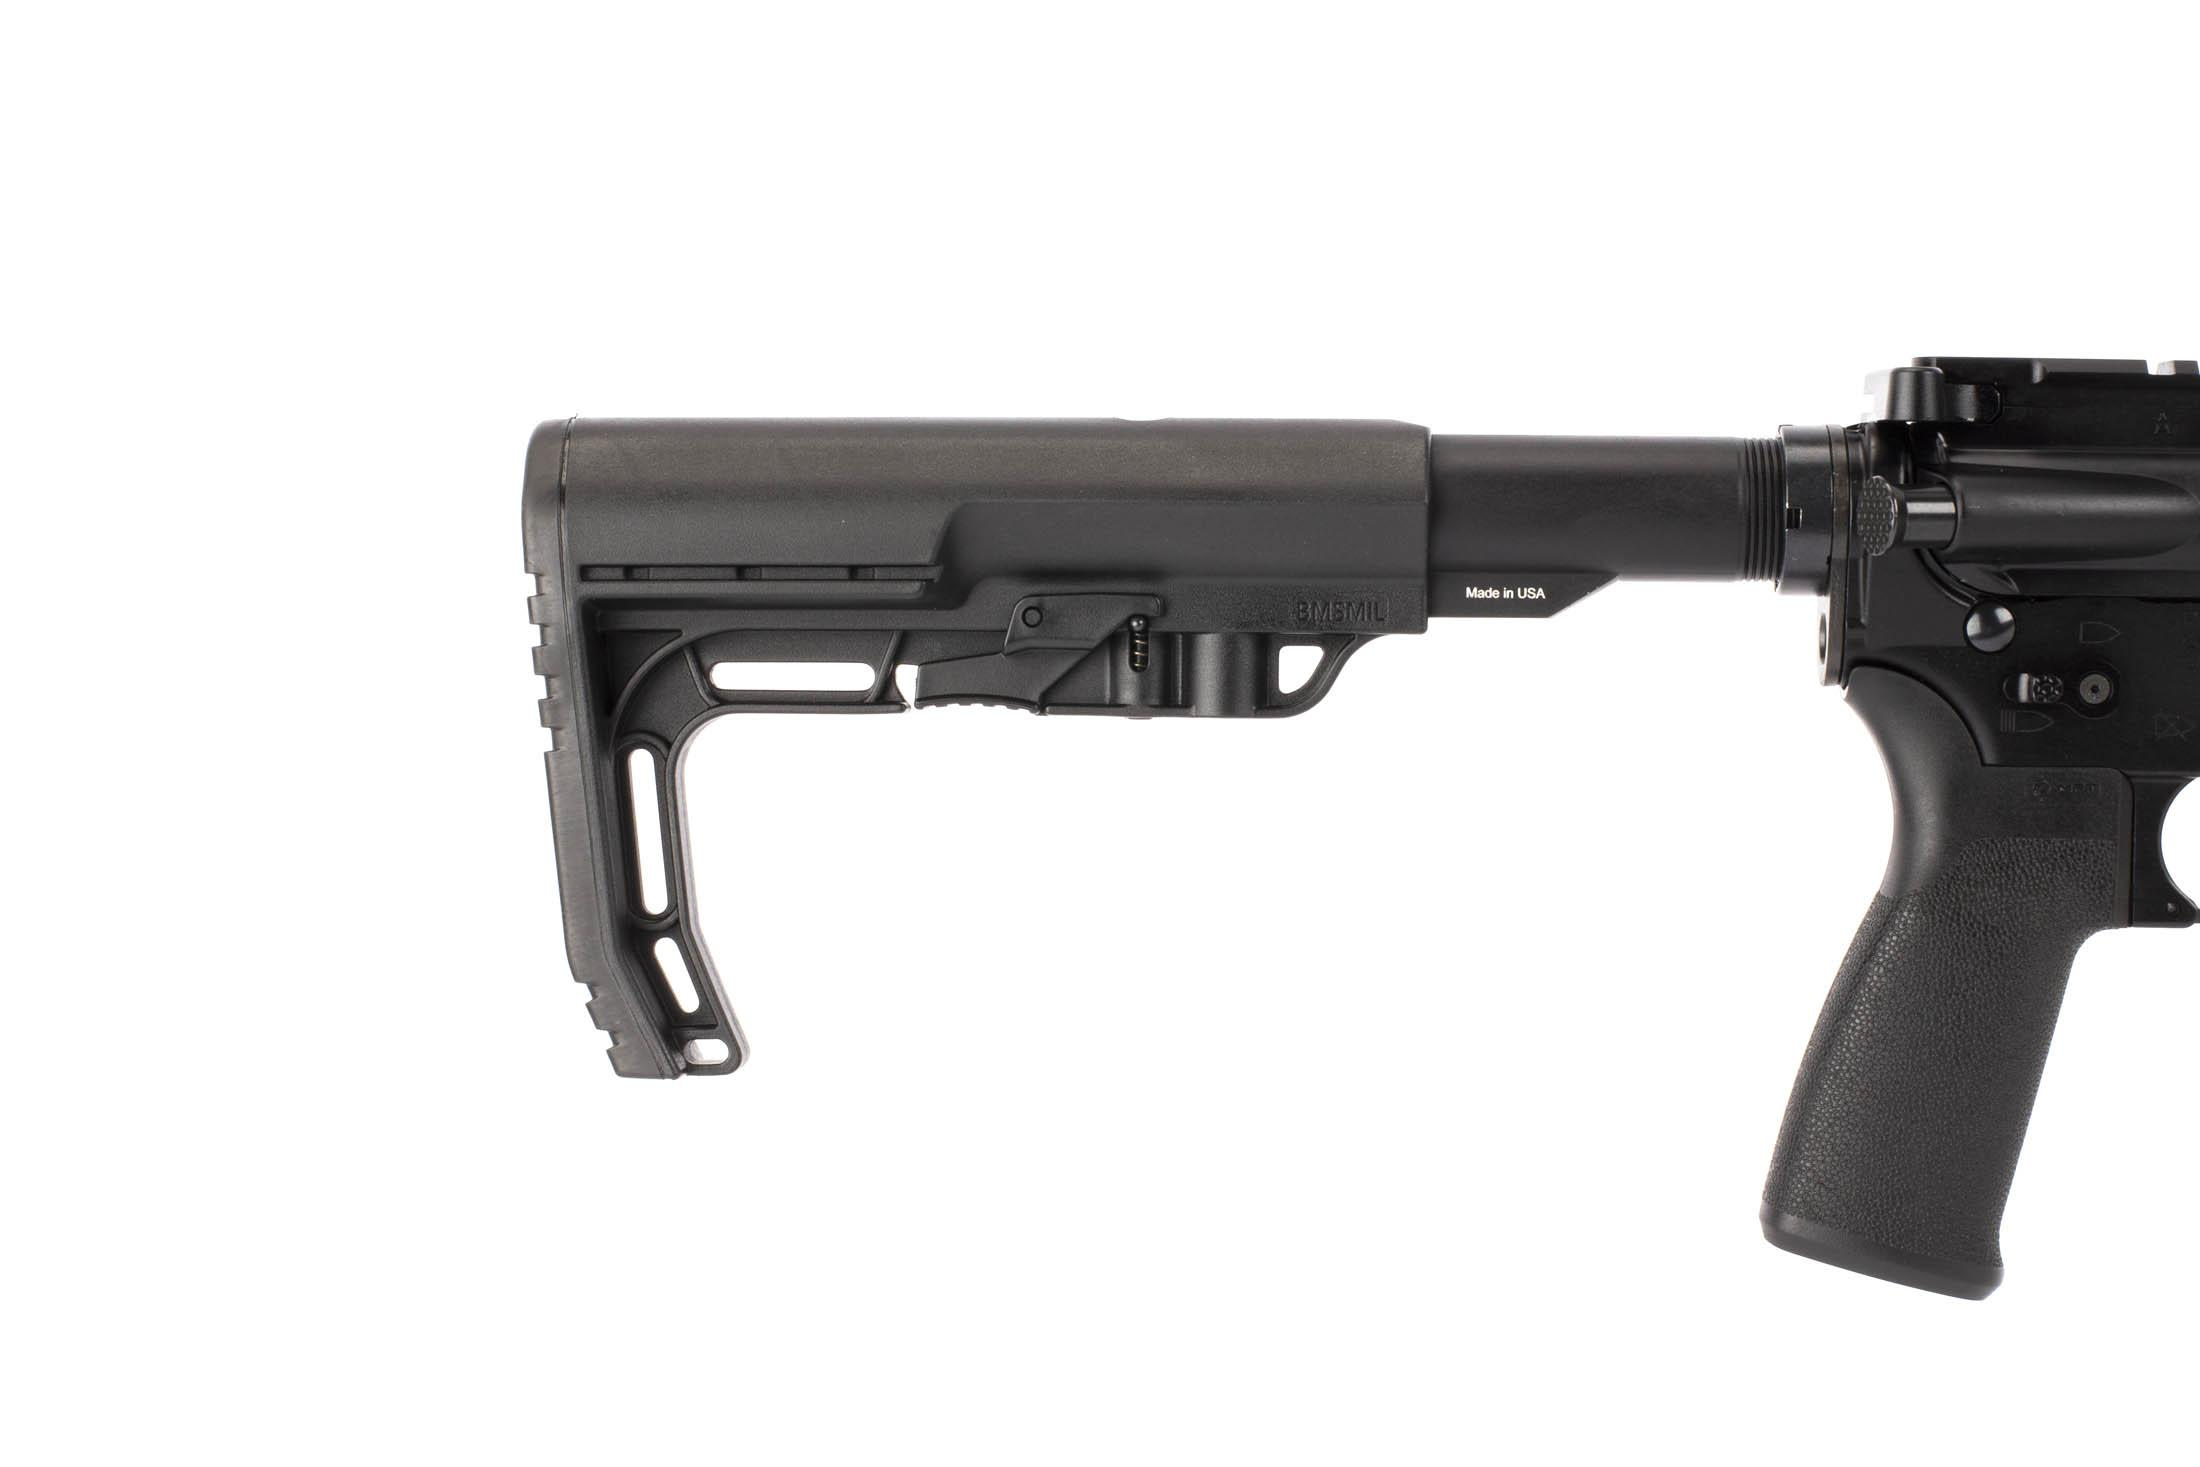 Radical Firearms 5.56 NATO SOCOM 16in AR-15 with a Mission First Tactical Minimalist carbine stock